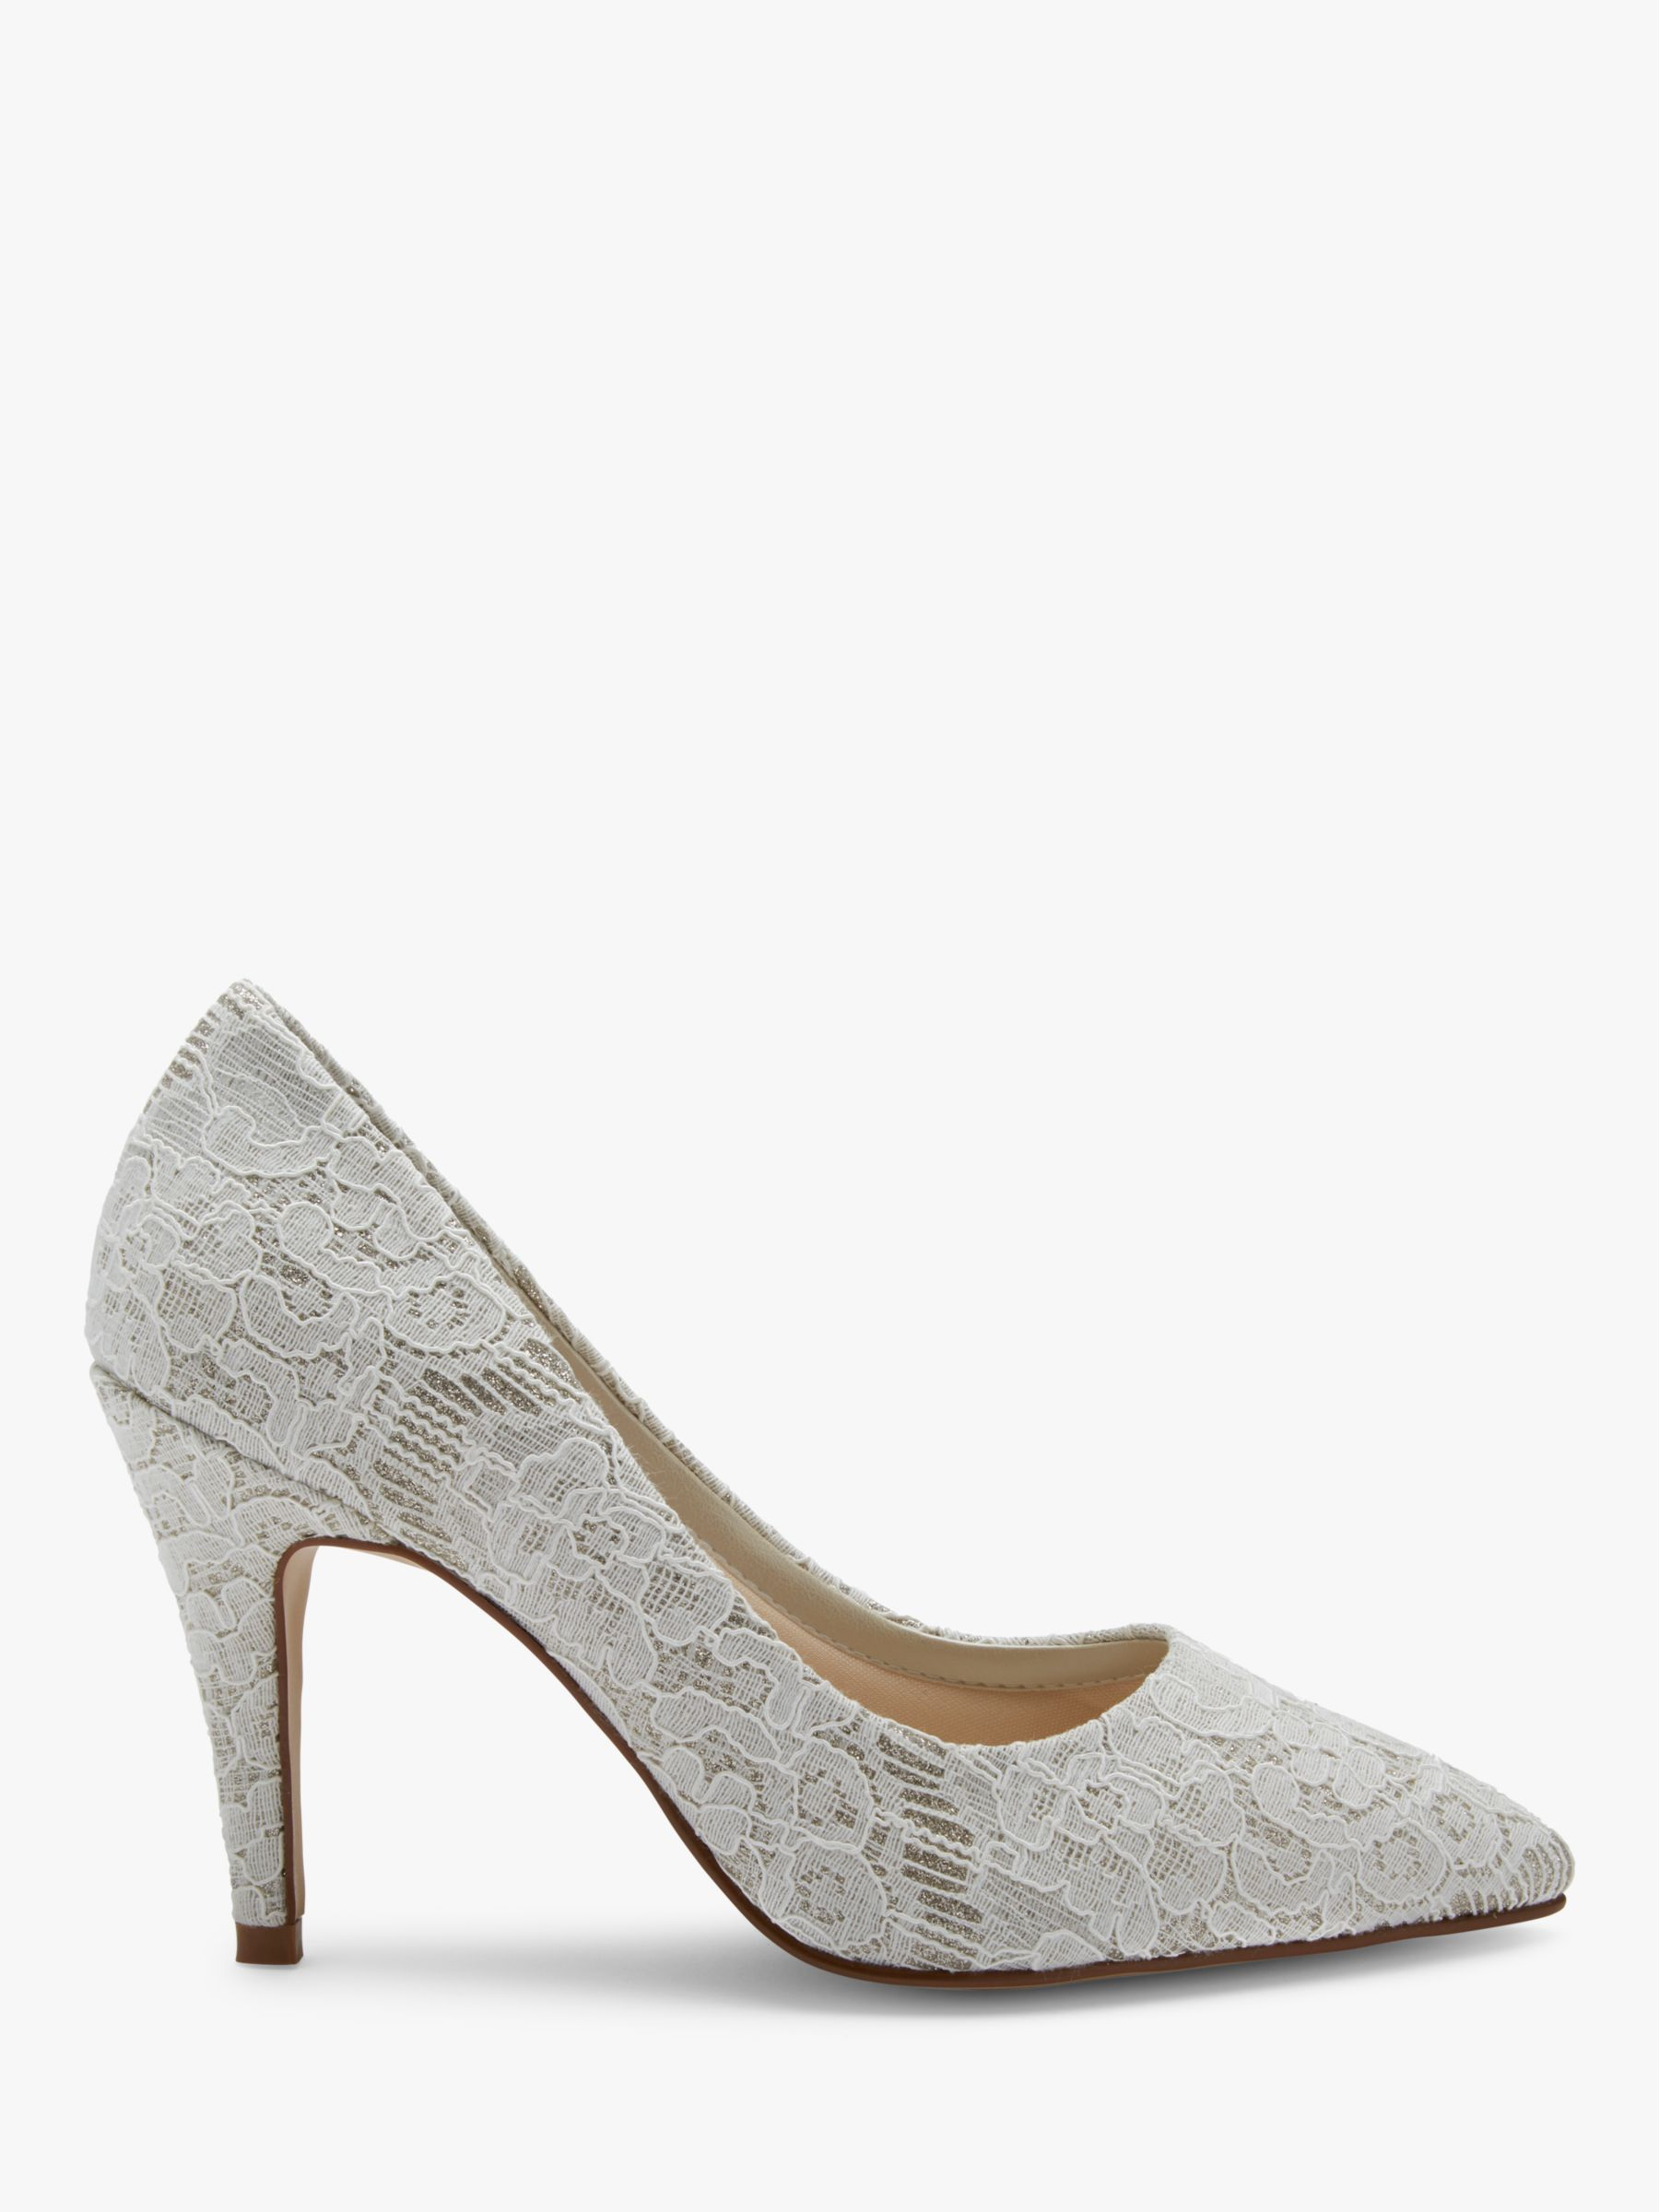 Rainbow Club Rainbow Club Giverney Stiletto Heeled Court Shoes, Ivory